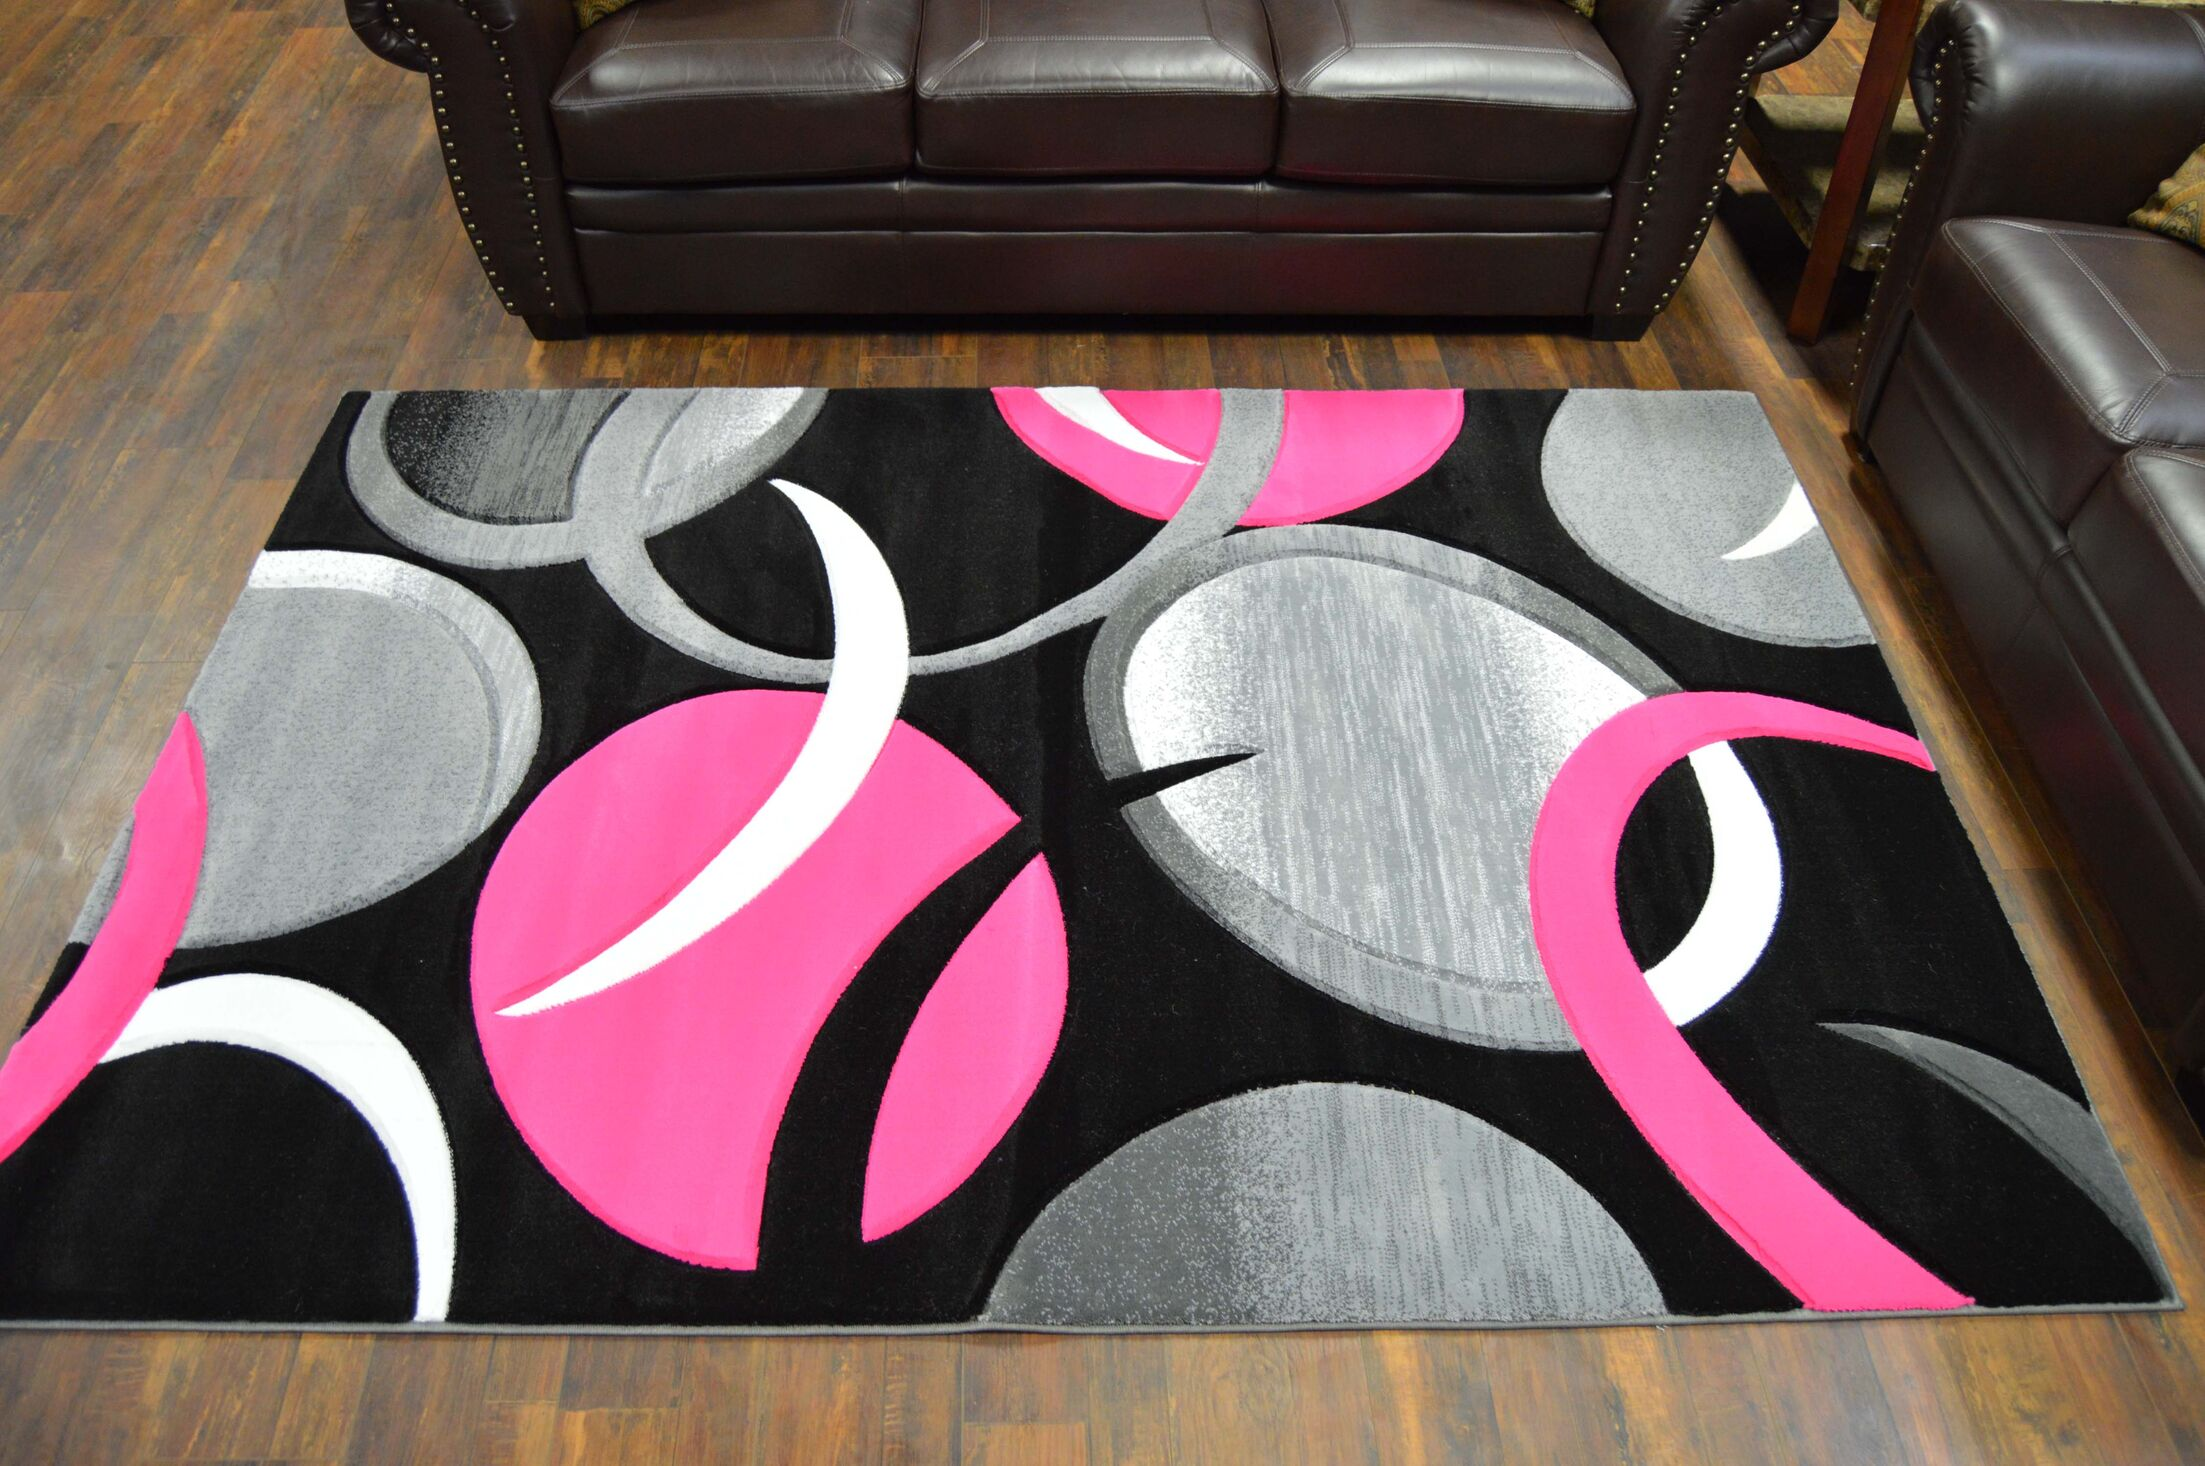 Mccampbell 3D Hand Carved Abstract Pink/Black Area Rug